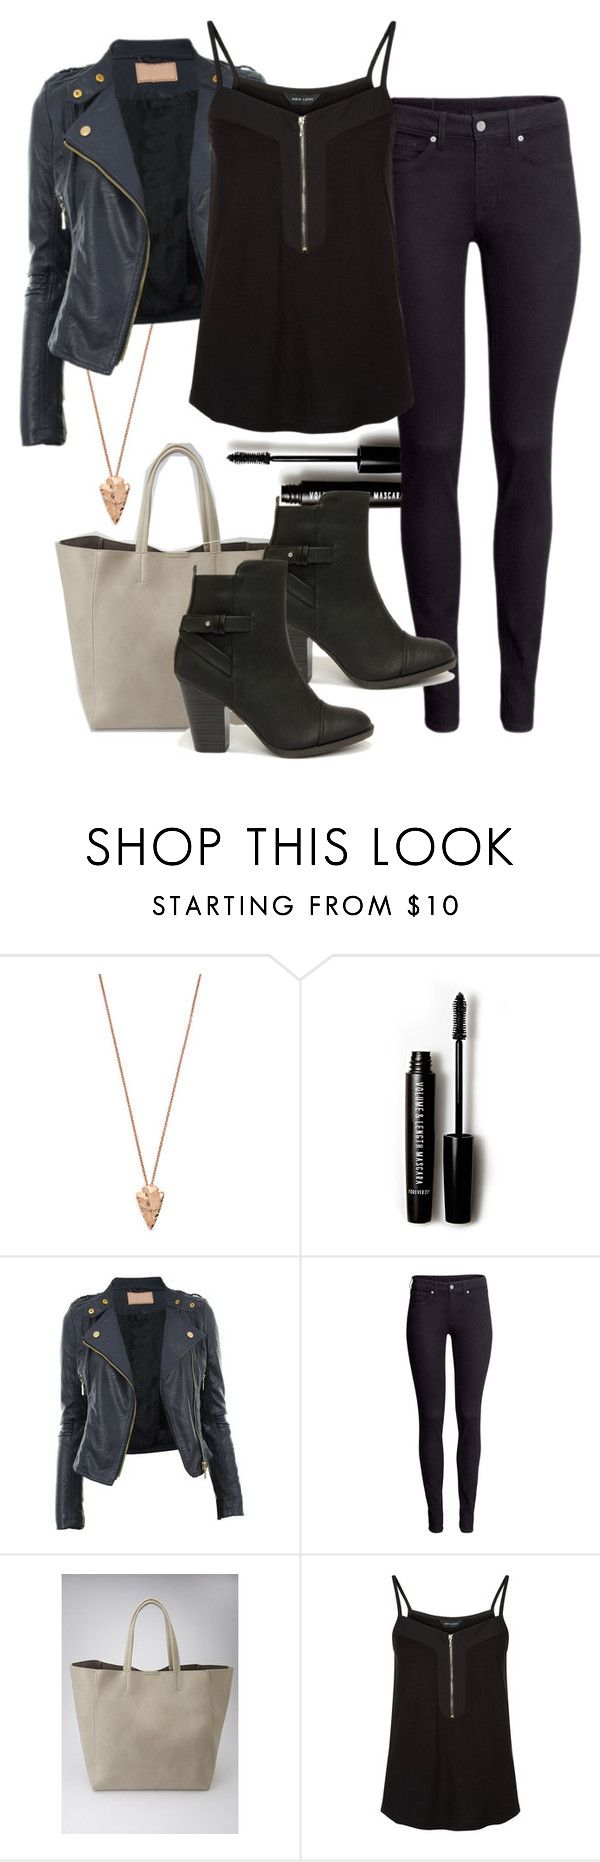 """Katherine inspired fall outfit"" by tvdstyleblog ❤ liked on Polyvore featuring Pamela Love, Forever 21, H&M and Breckelle's"